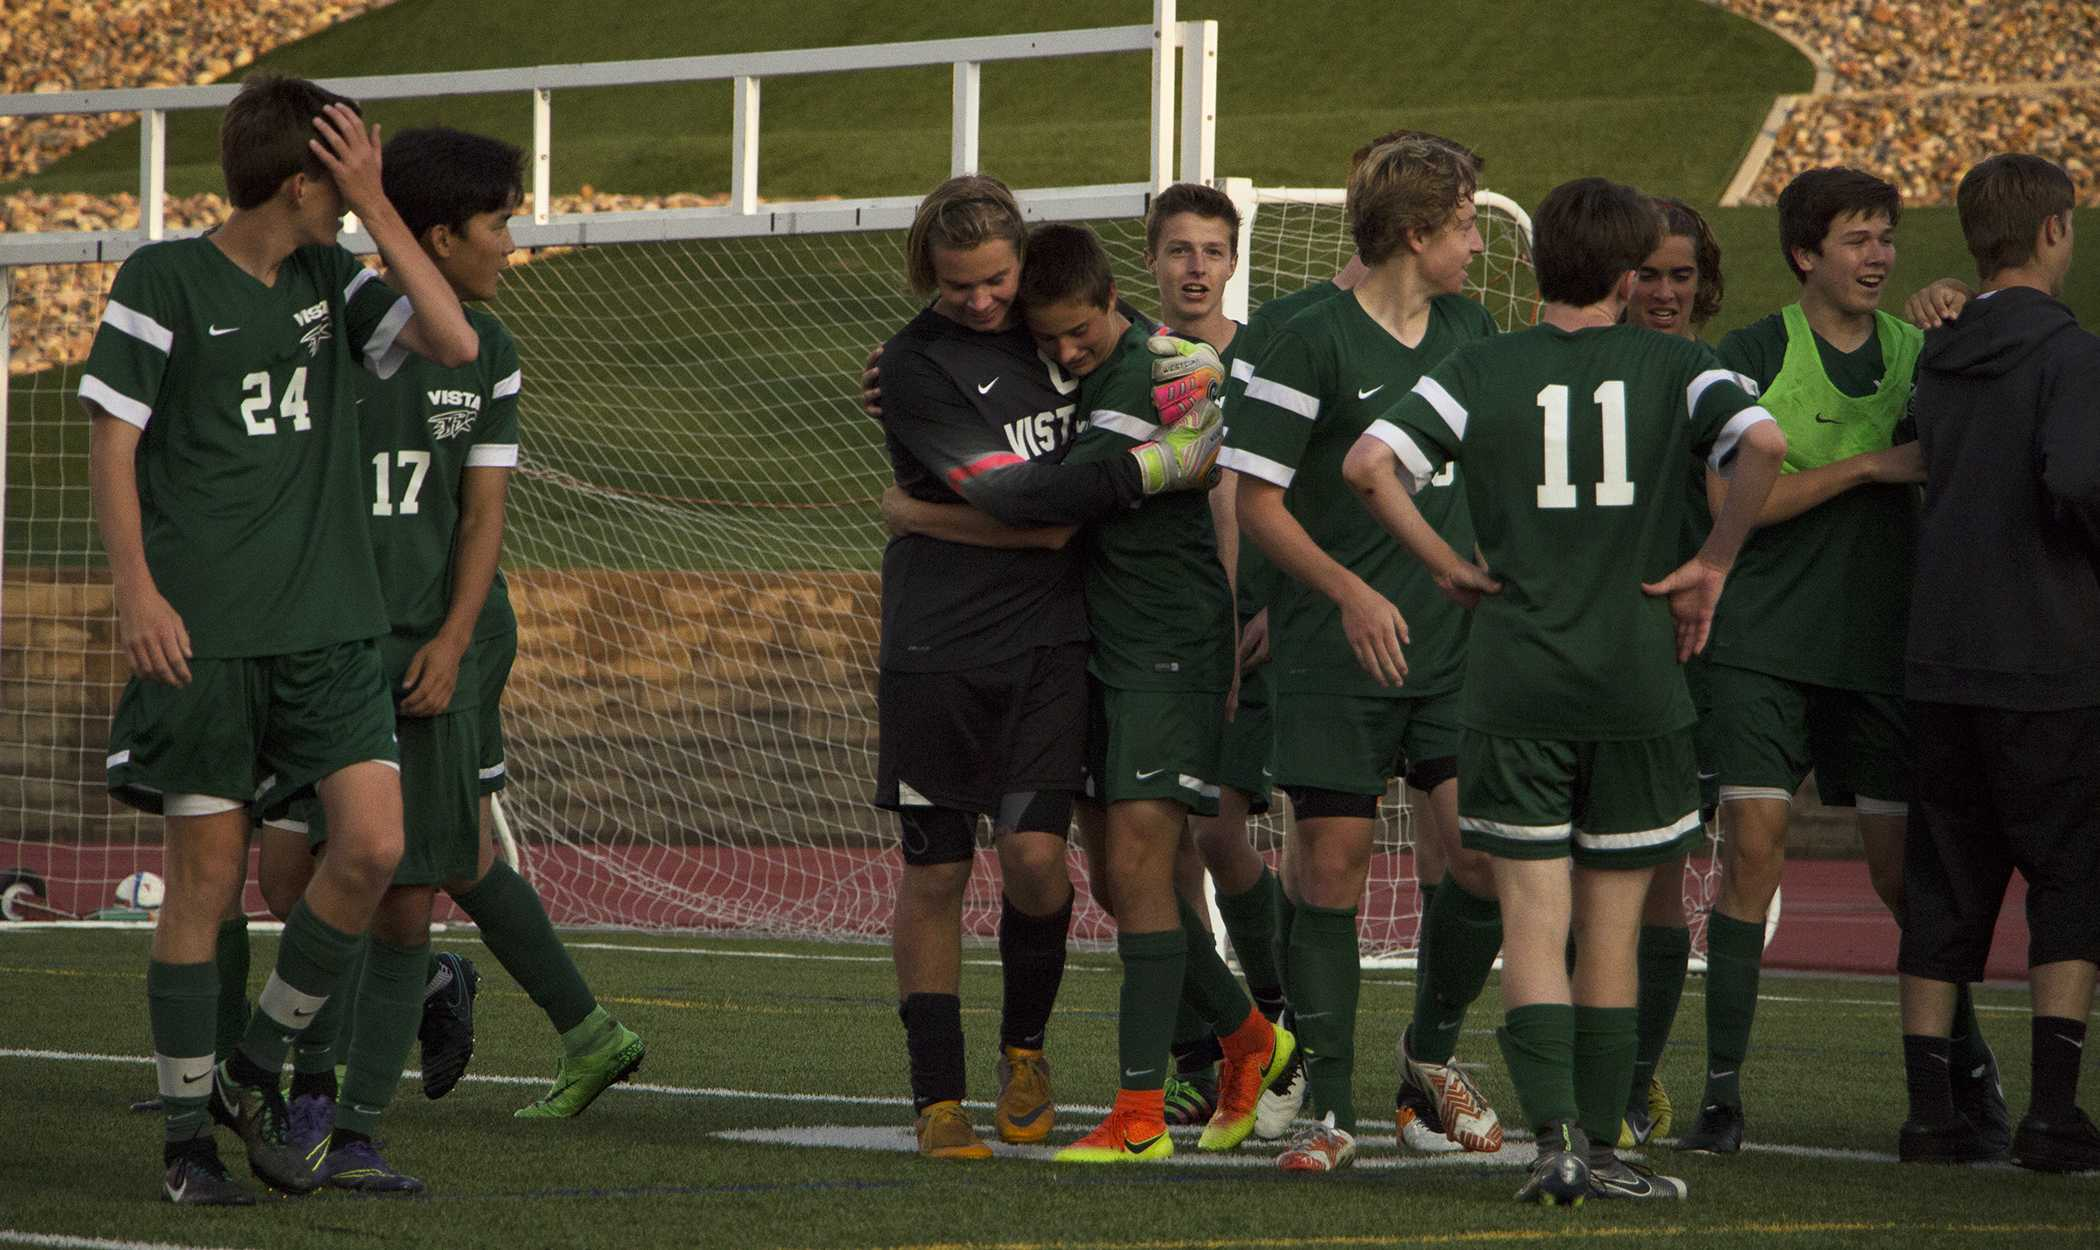 PHOTOS: Men's Varsity Soccer vs. Ponderosa